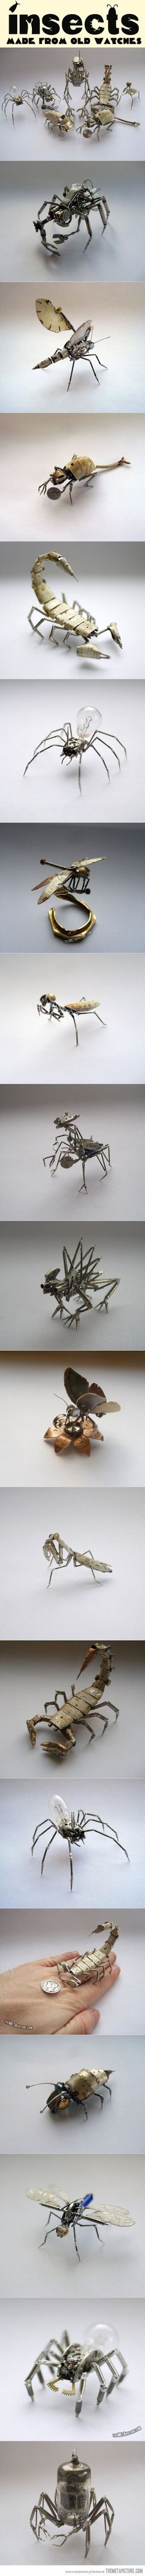 Insects made from old watches…Really cool, but I'm curious as to where the bulbs & transistor/fuse type thingies come from. Seriously ... would appreciate being enlightened.  Doesn't really matter whether they do or don't come in watches. These are still works of genius & art ... in my not always so humble openguin.  :)